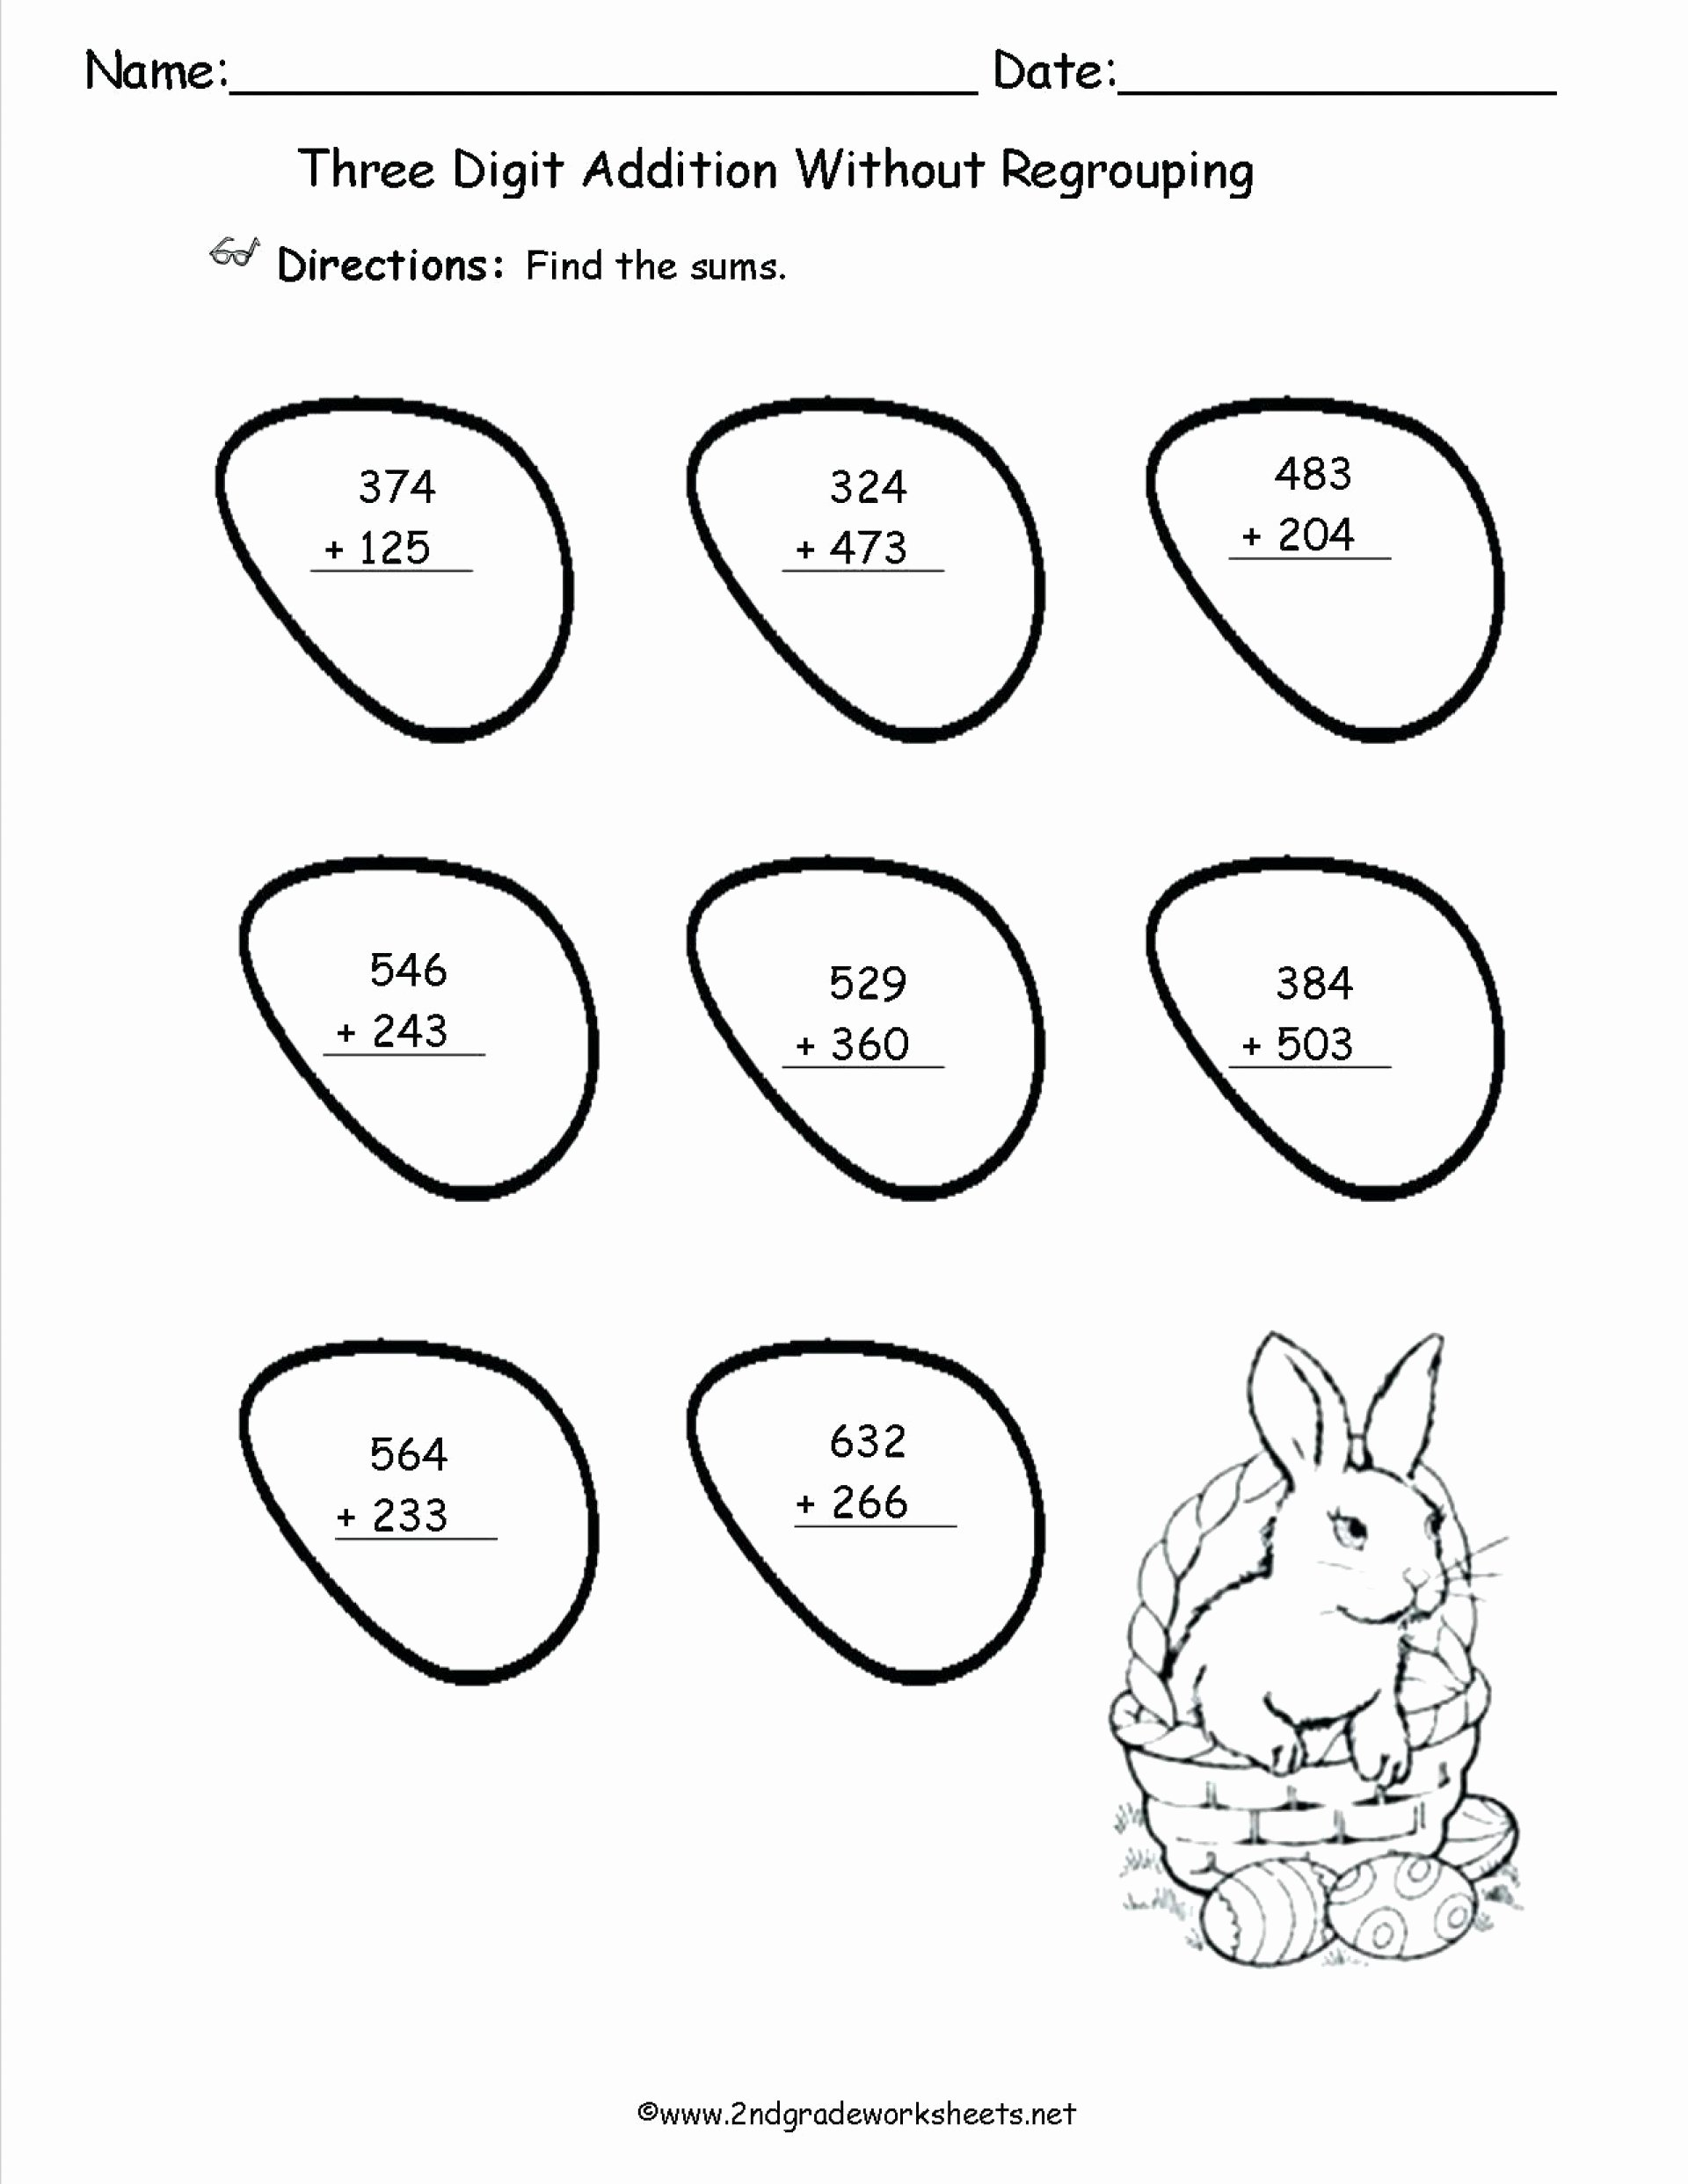 Printable Multiplication Worksheets for 3rd Graders Unique Frozen Math Worksheets 3rd Grade Printable Multiplication